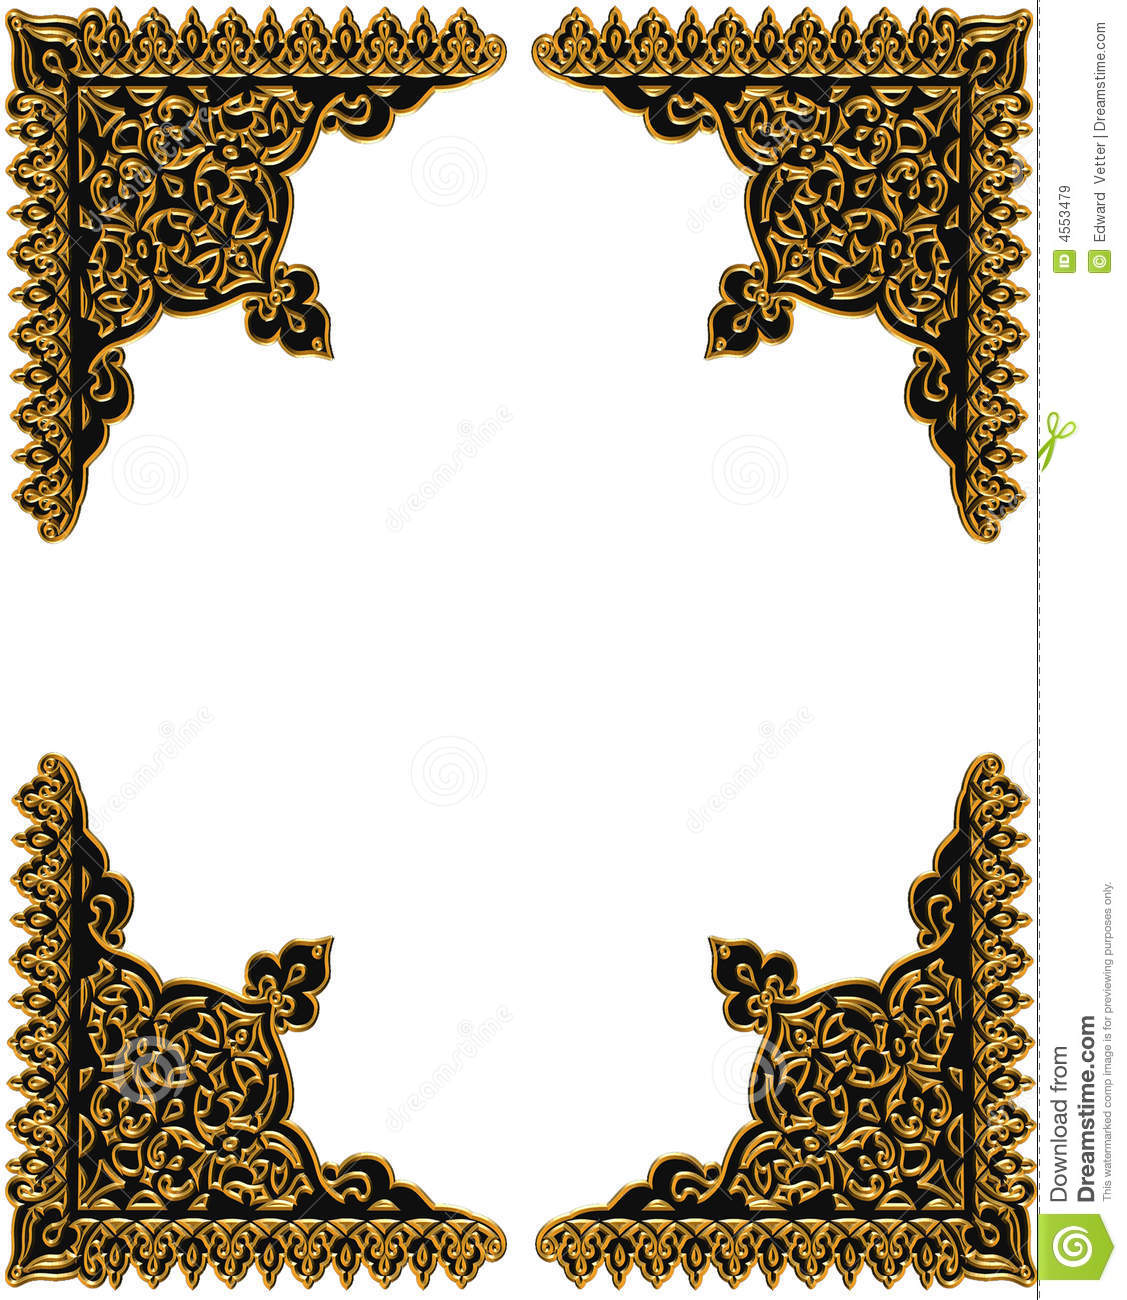 12 Silver And Gold Scrapbook Design Images - Black and Gold